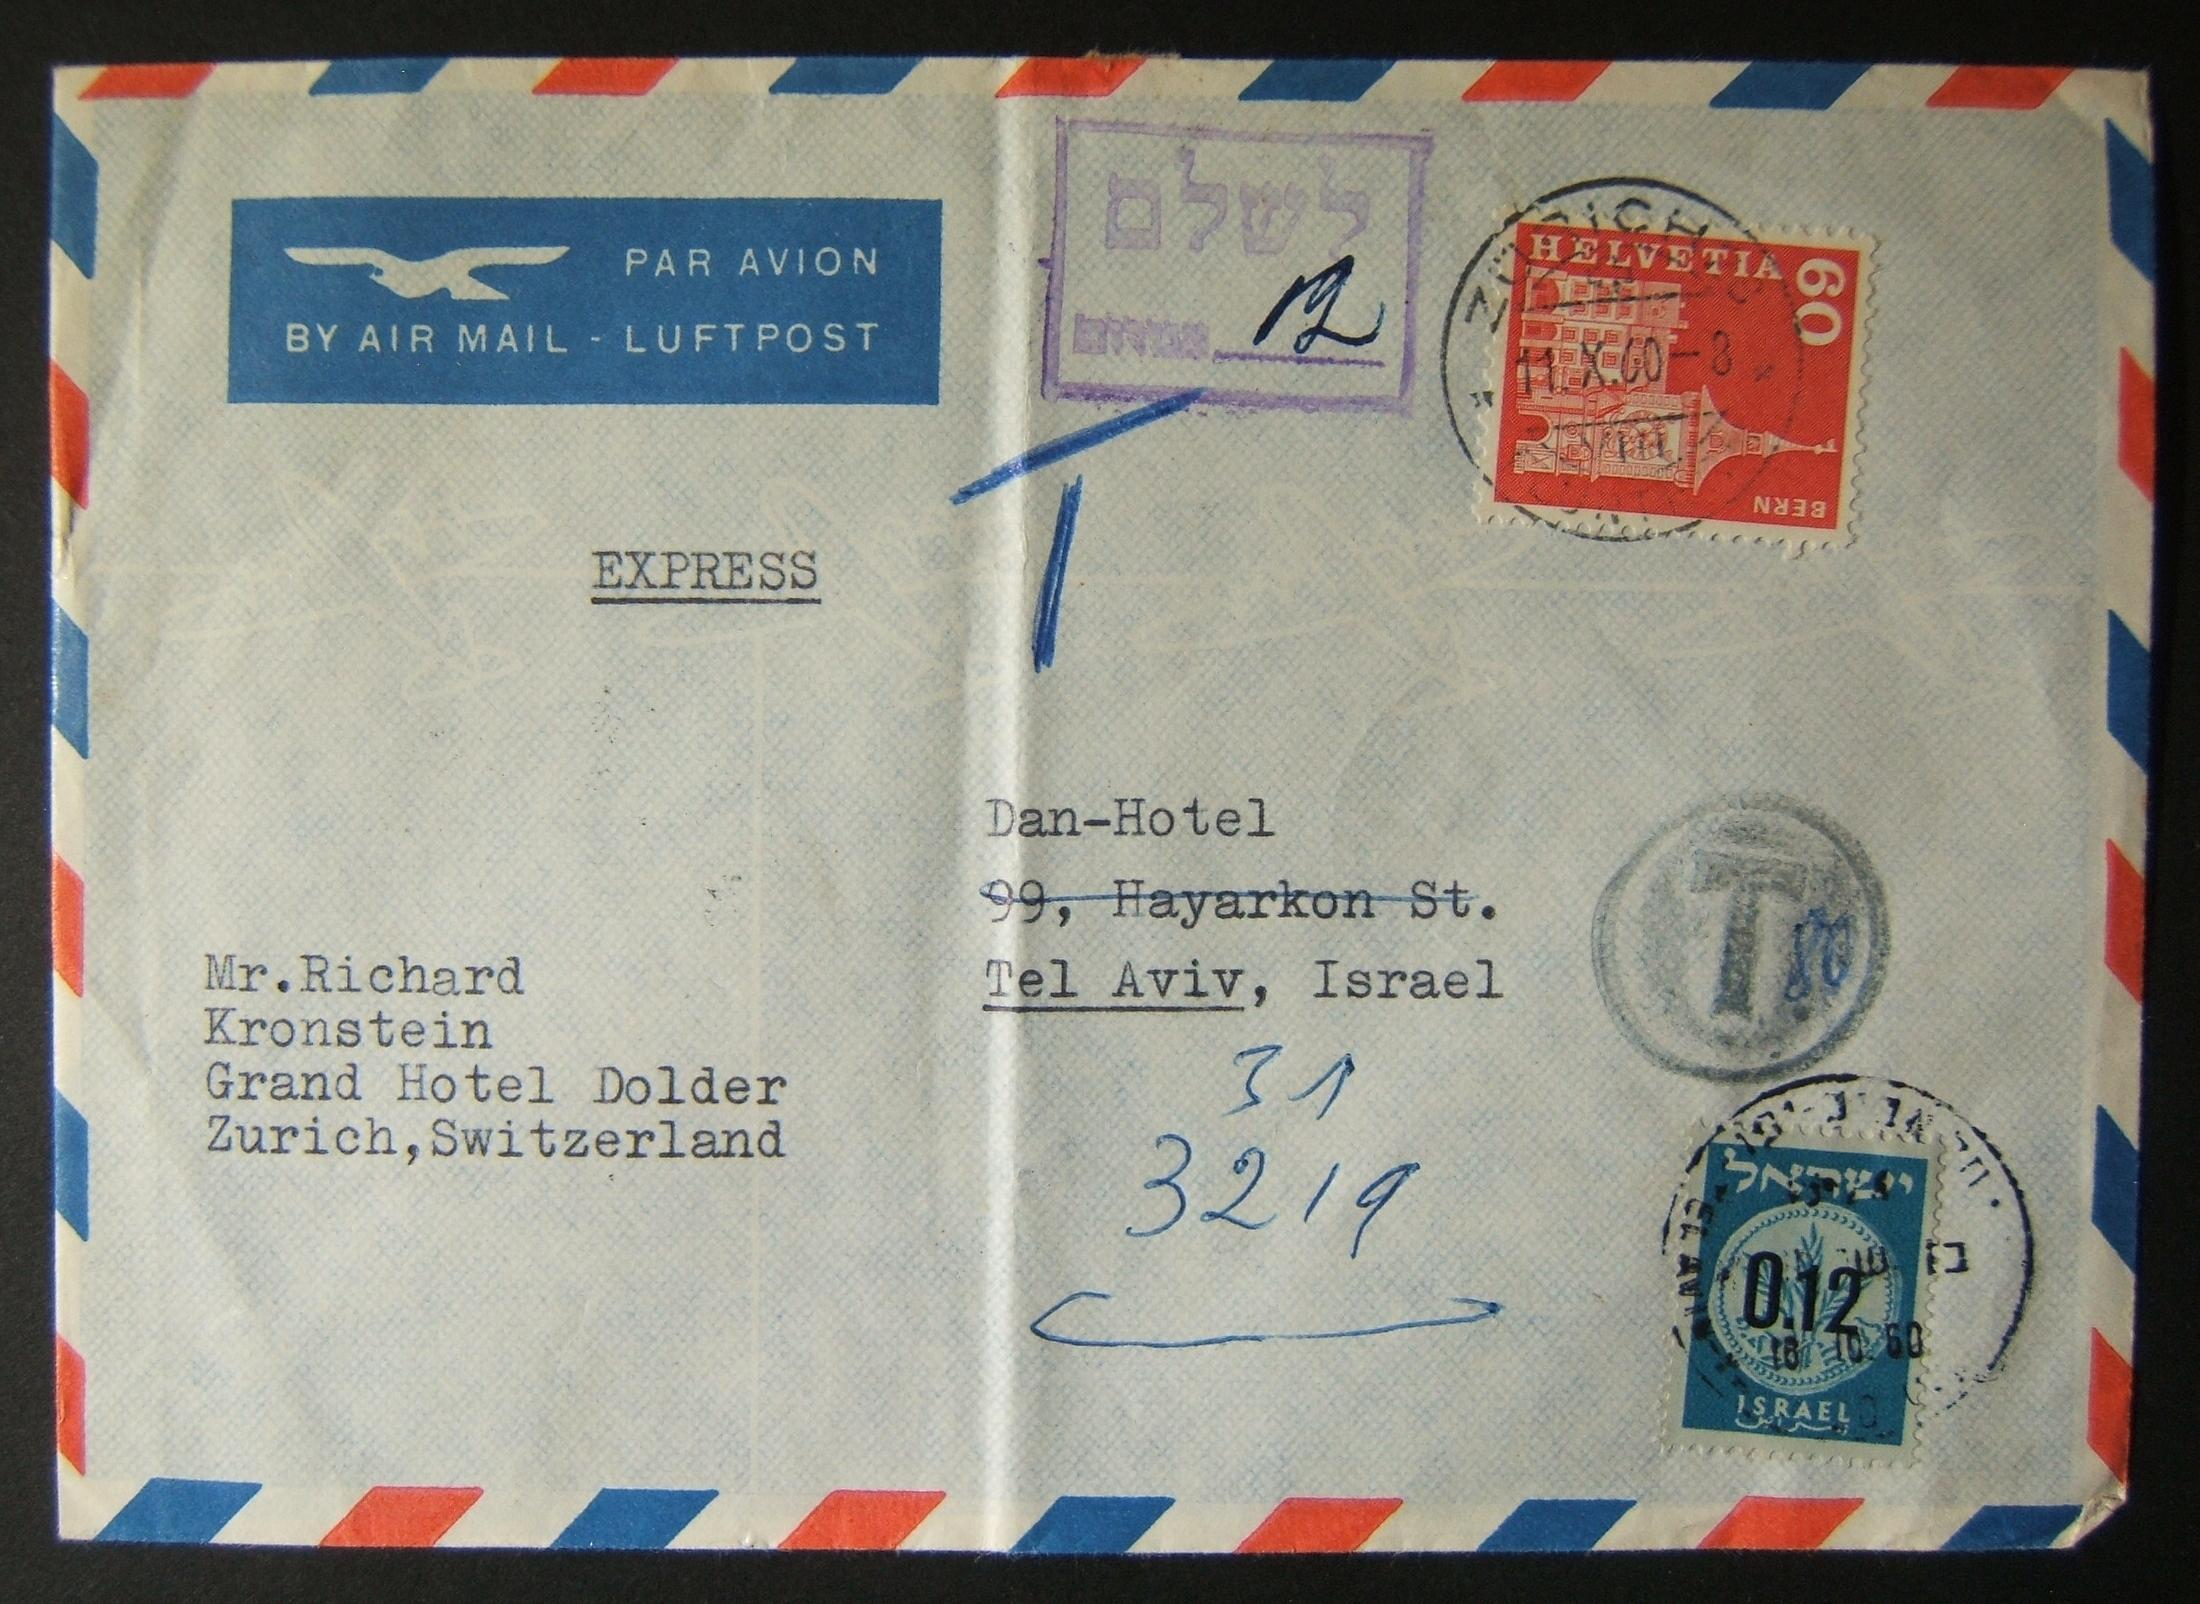 1960 incoming Swiss taxed mail: 11 X 1960 express airmail cover ex ZURICH to TLV underfranked at 60Fr and taxed 0.12L in Israel, paid 16-10-60 using 0.12L 1960 Provisional Ba183 fr